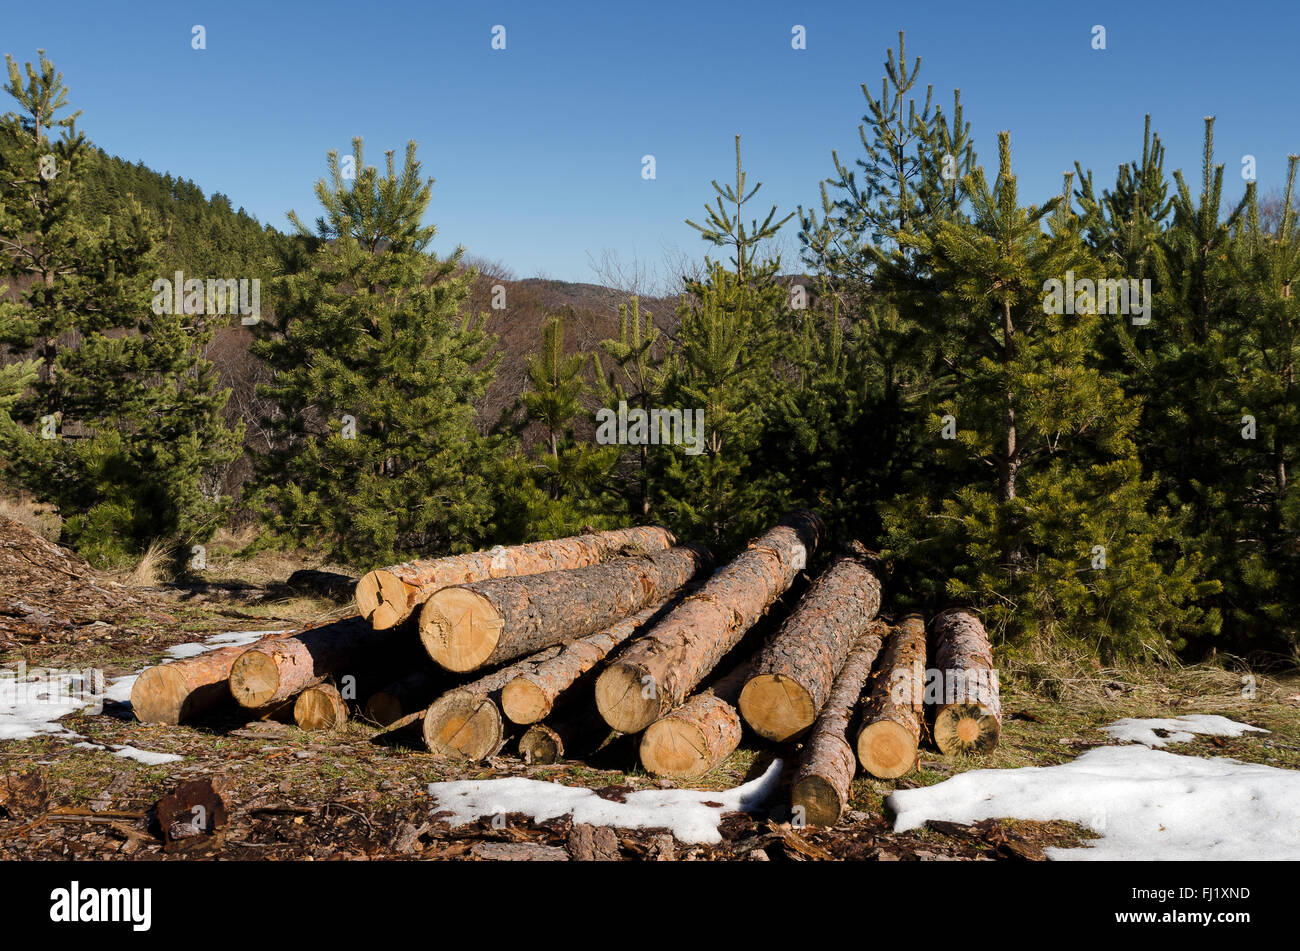 Coniferous timber in a mountain during the winter - Stock Image